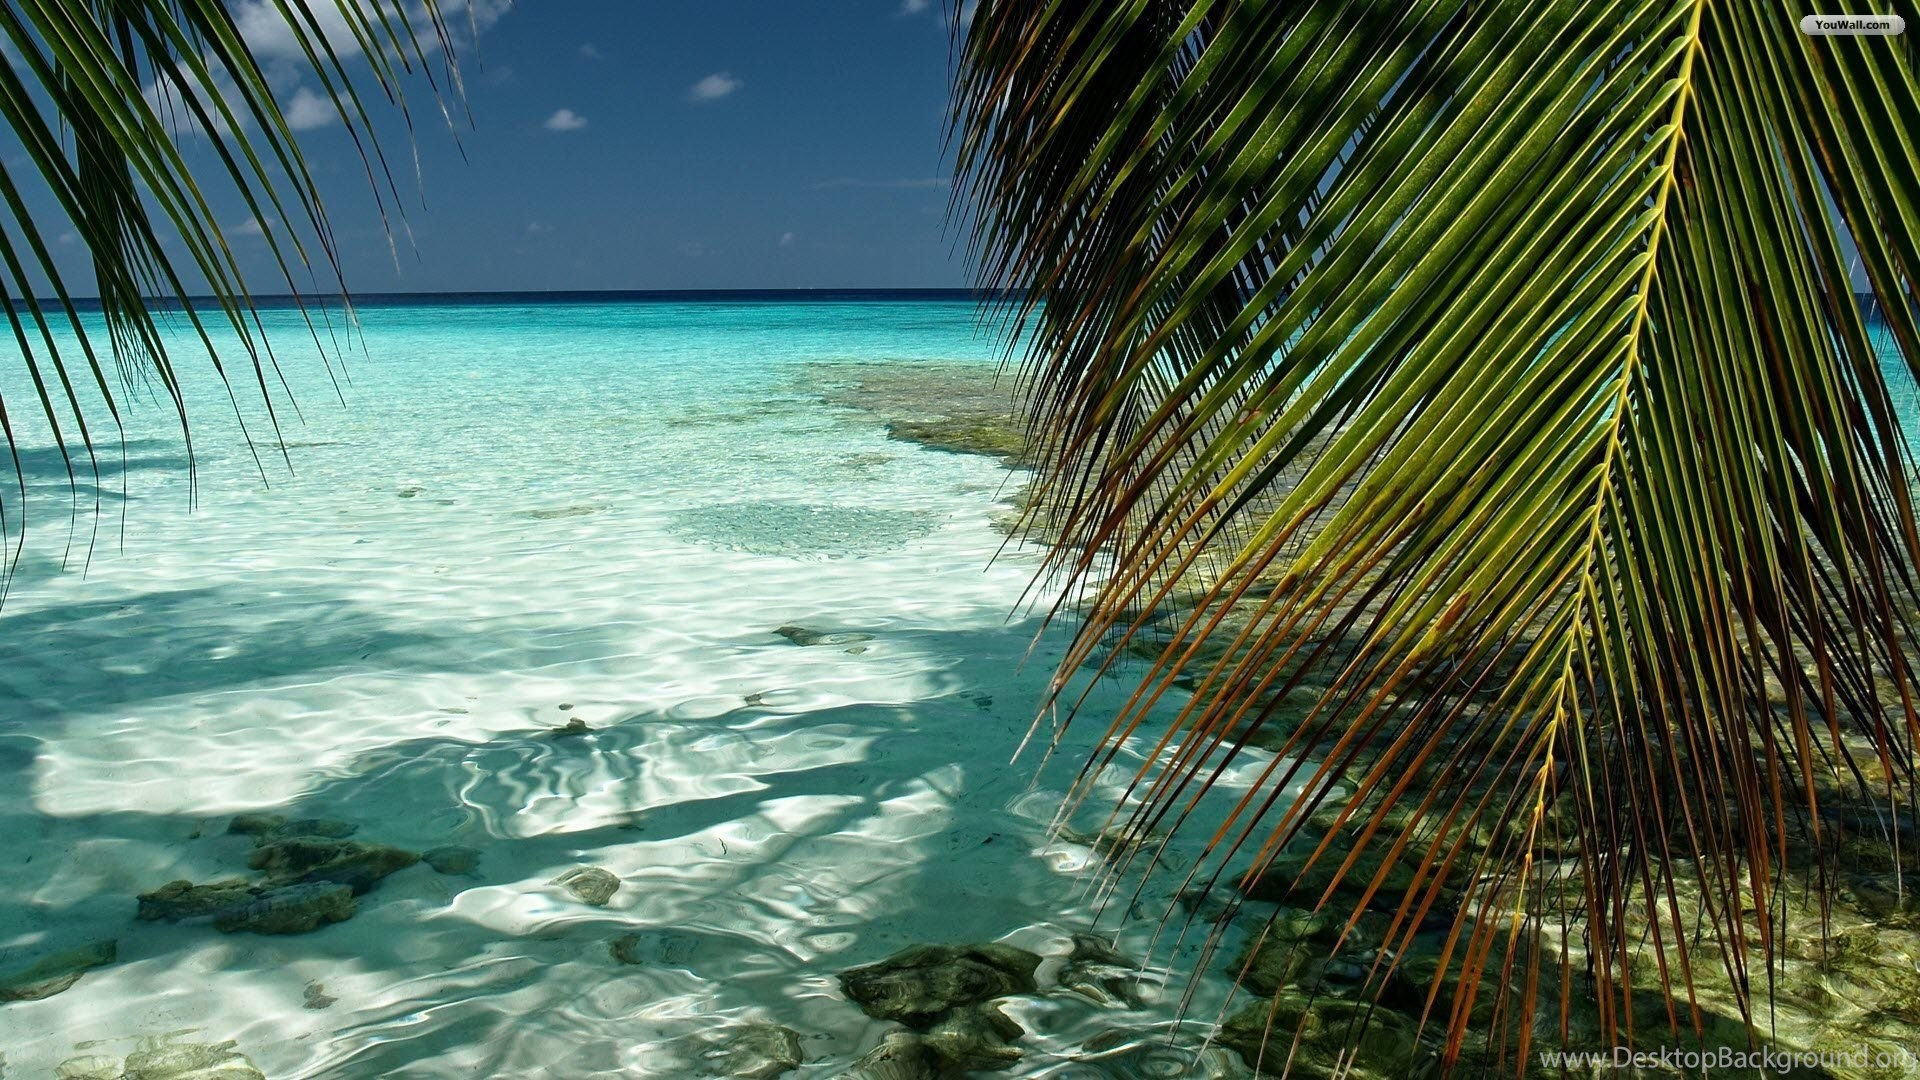 Free Tropical Desktop Backgrounds Wallpapers Cave Background